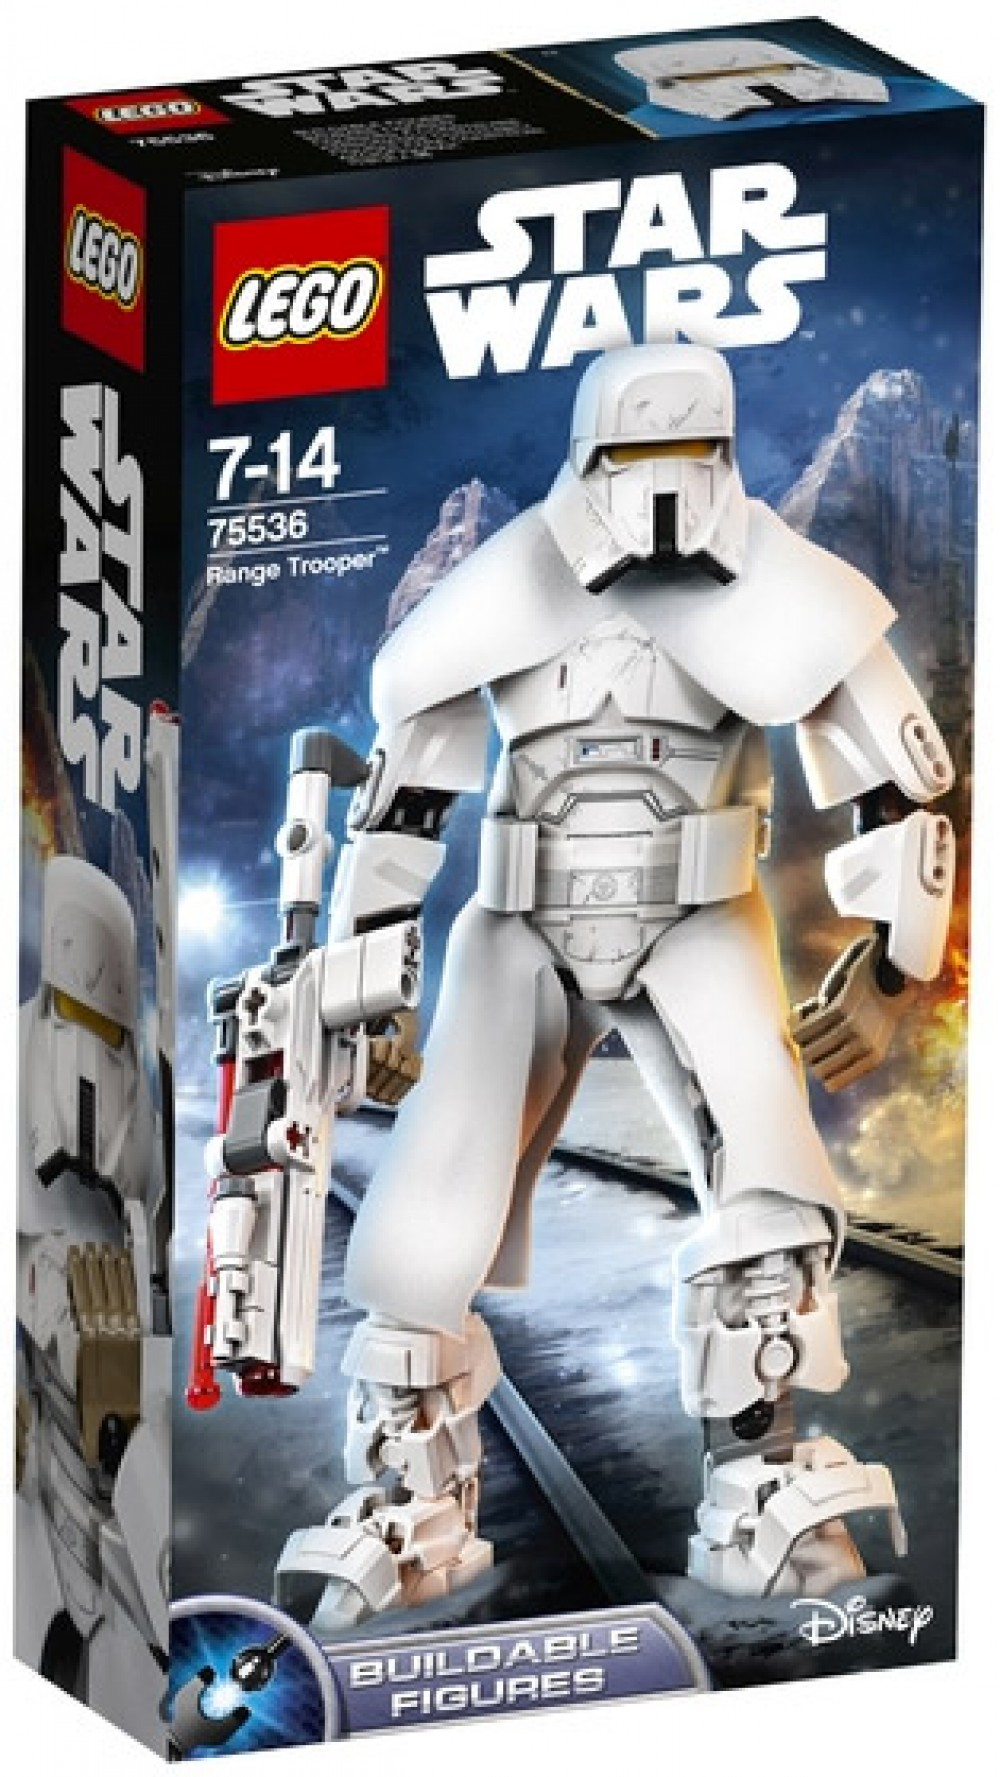 Nouveau LEGO Star Wars 75536 Range Trooper (Buildable Figures) 2018